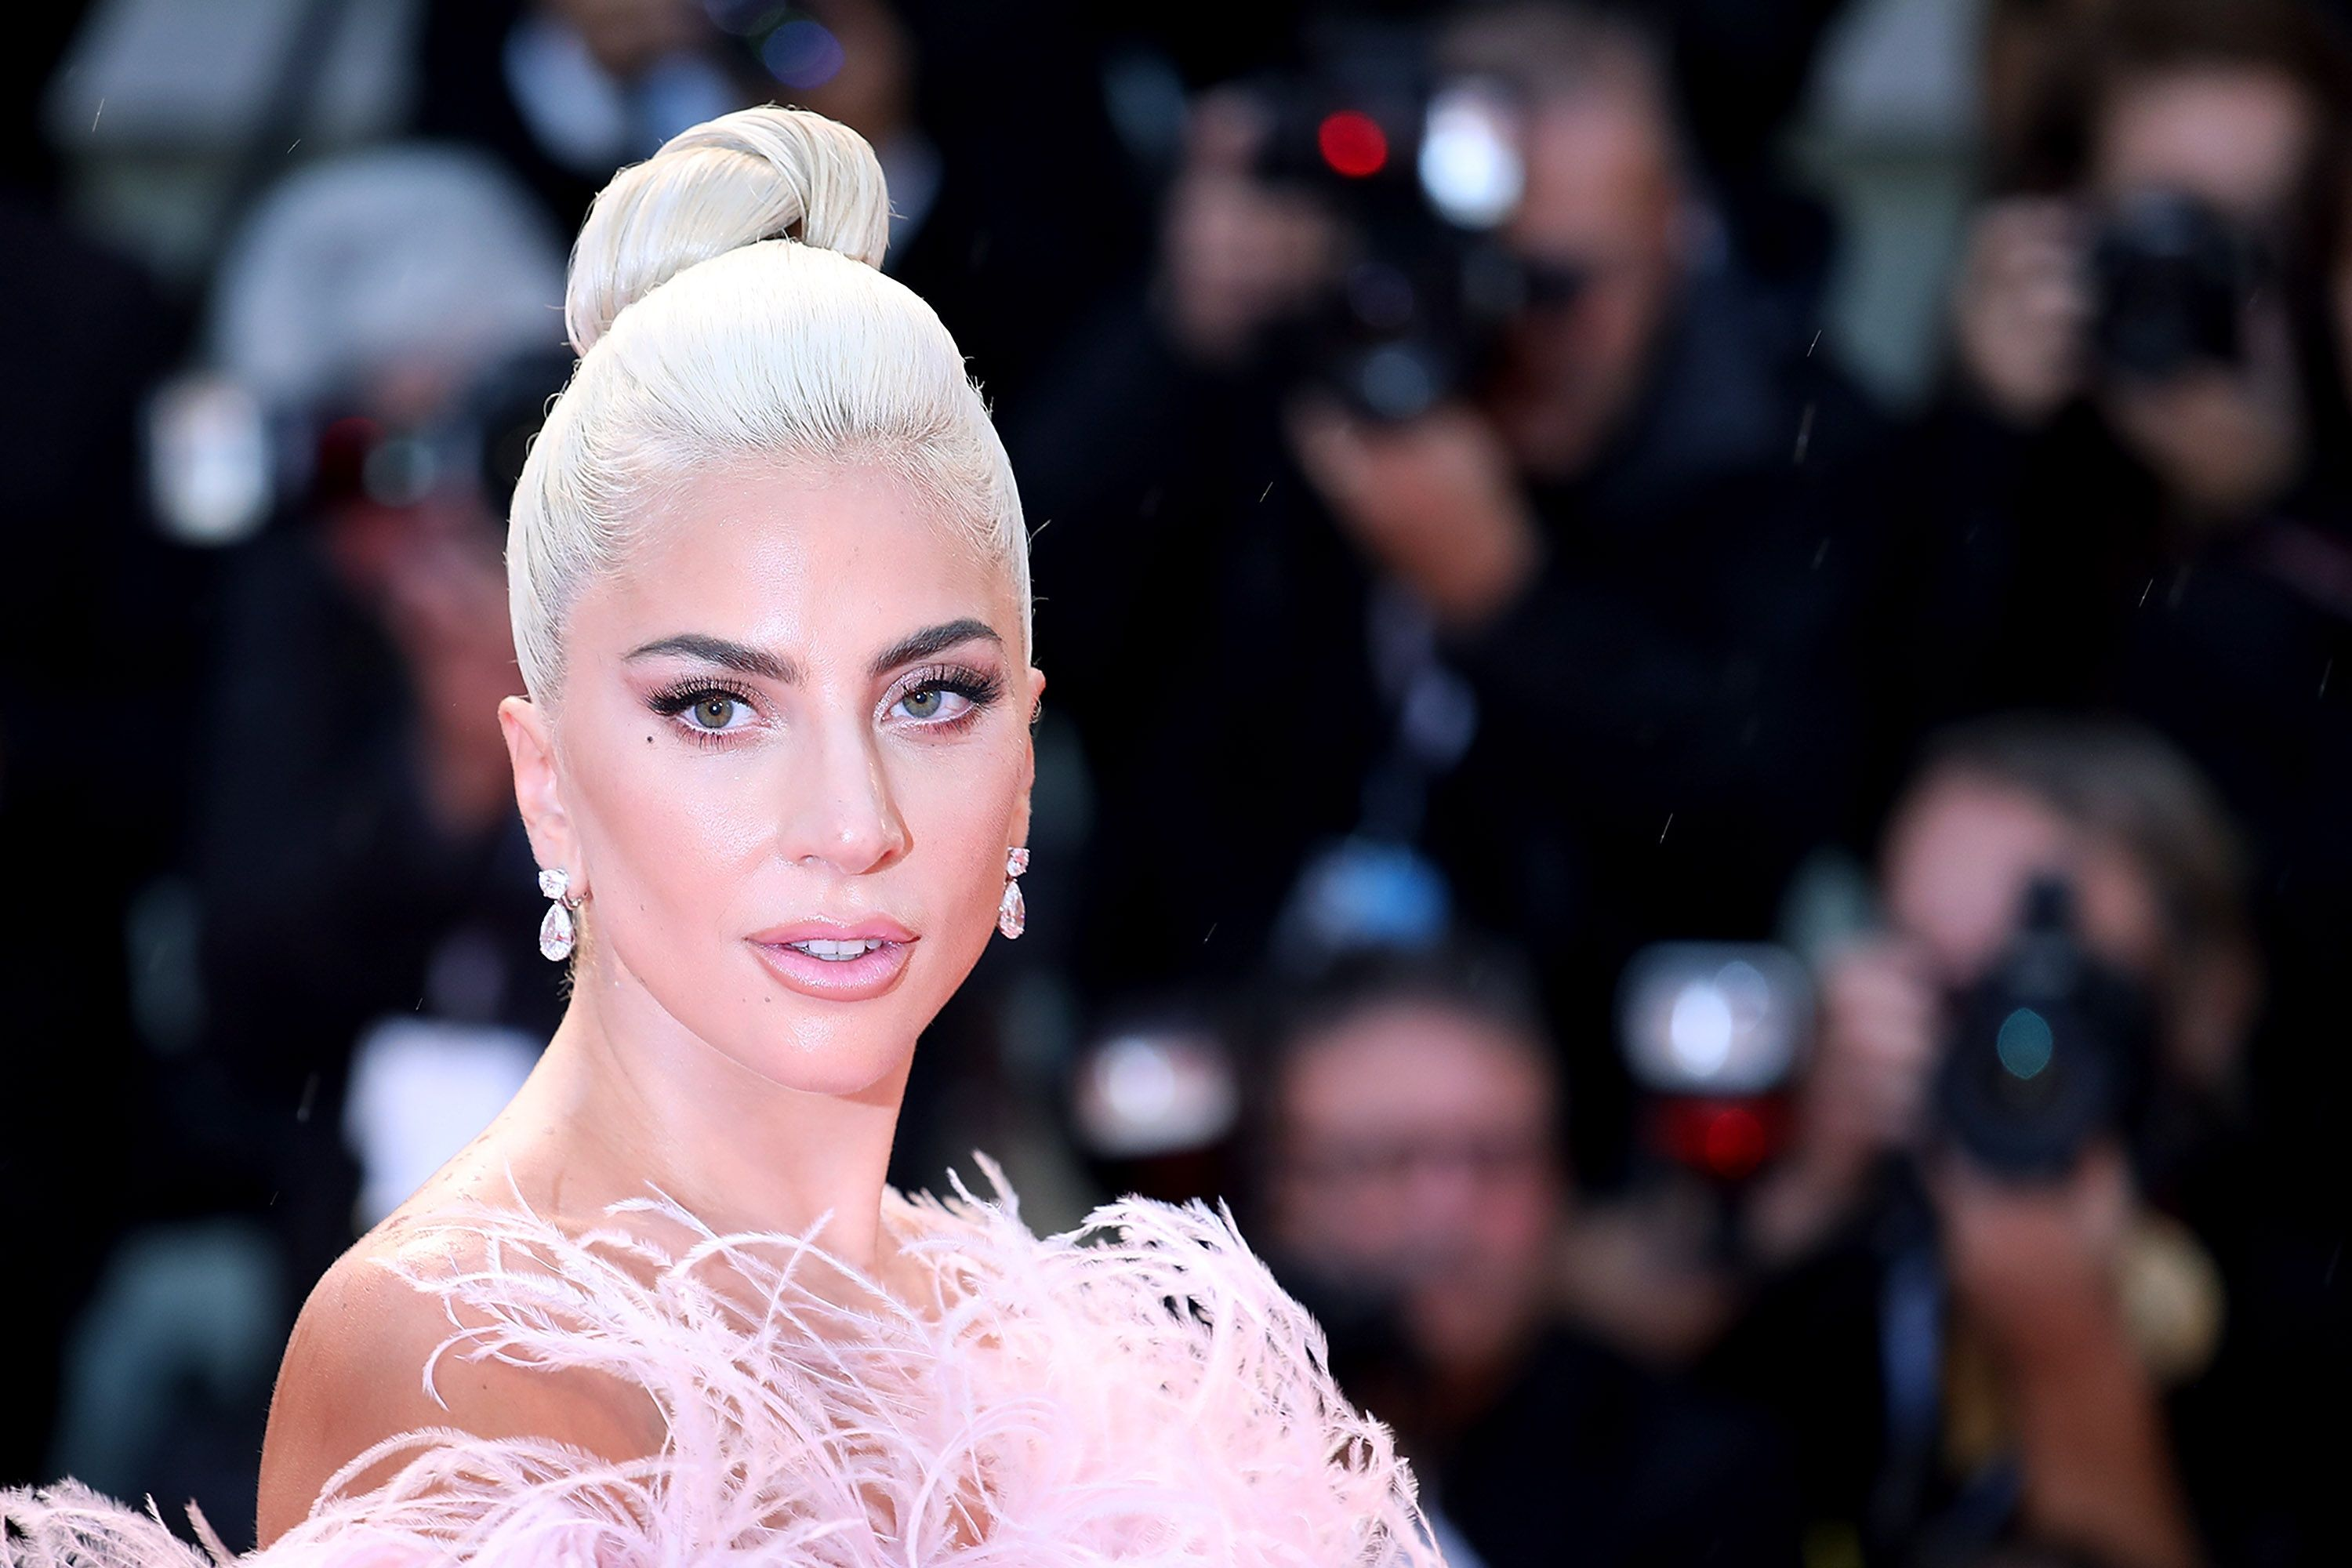 Lady Gaga and Michael Polansky Are So in Love, but They're Not Getting Engaged Just Yet